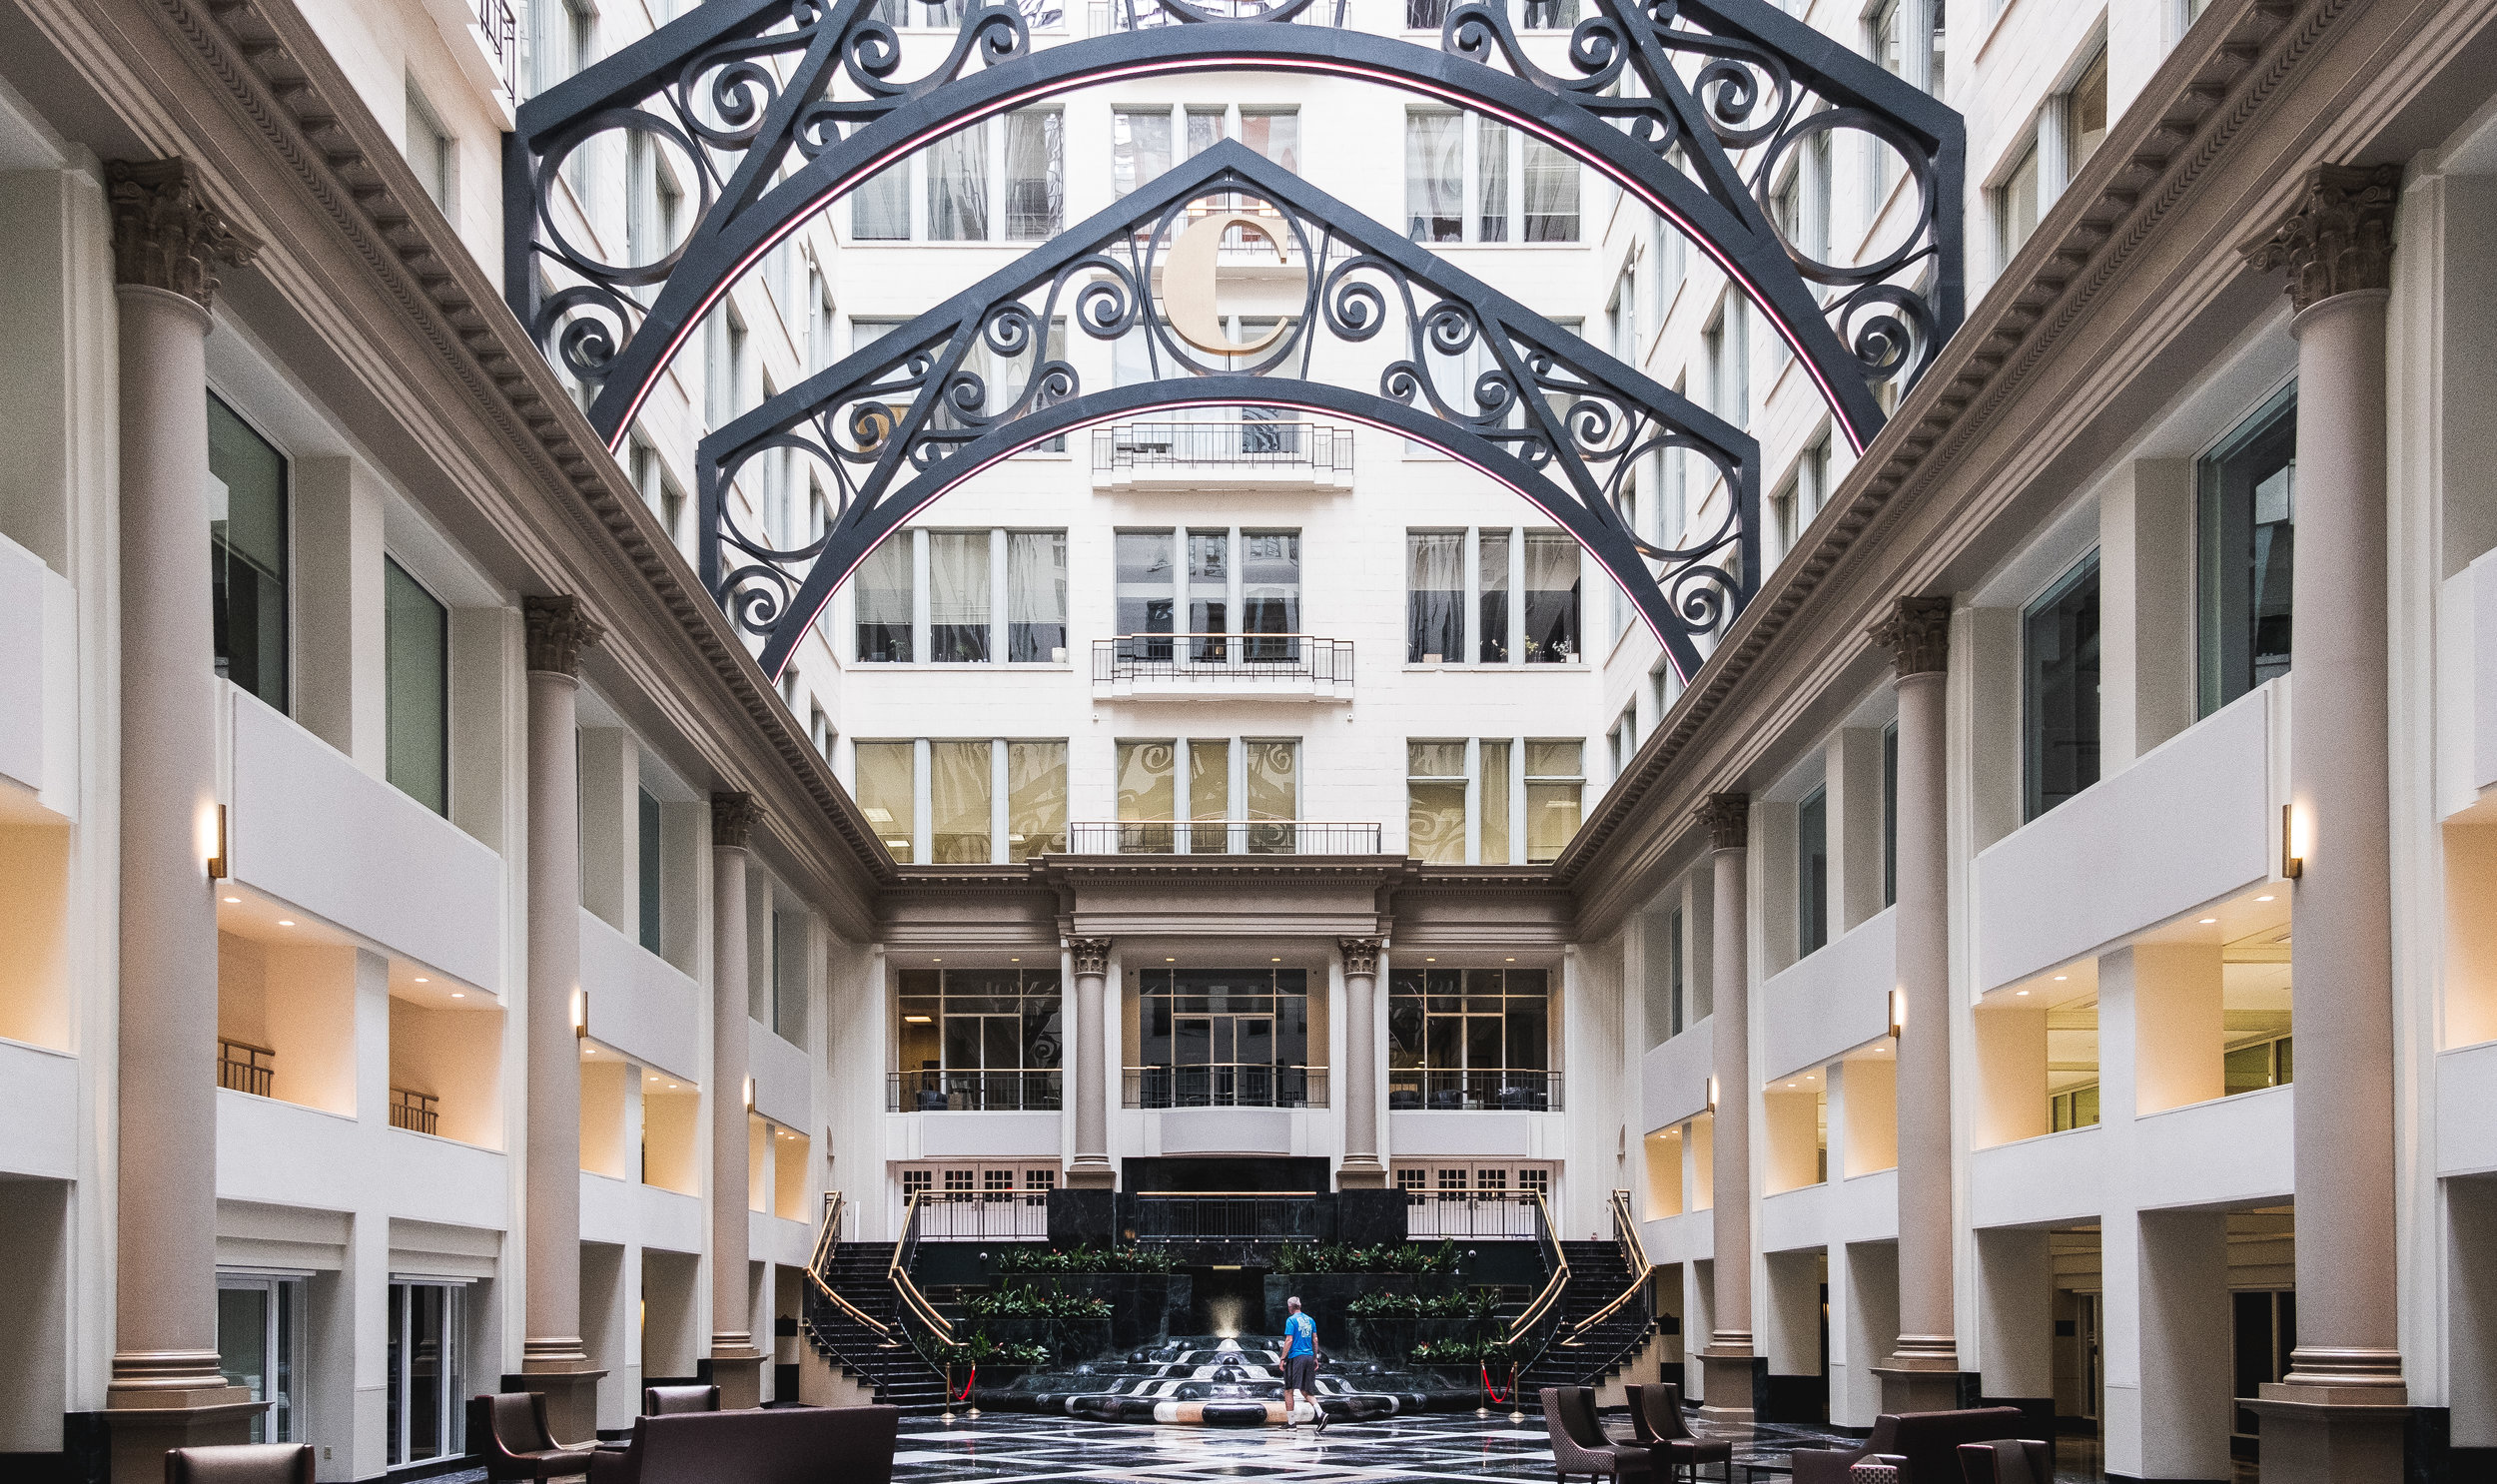 2019_ATRIUM AT THE CURTIS CENTER_THE PHILLY CHECKLIST-4.jpg